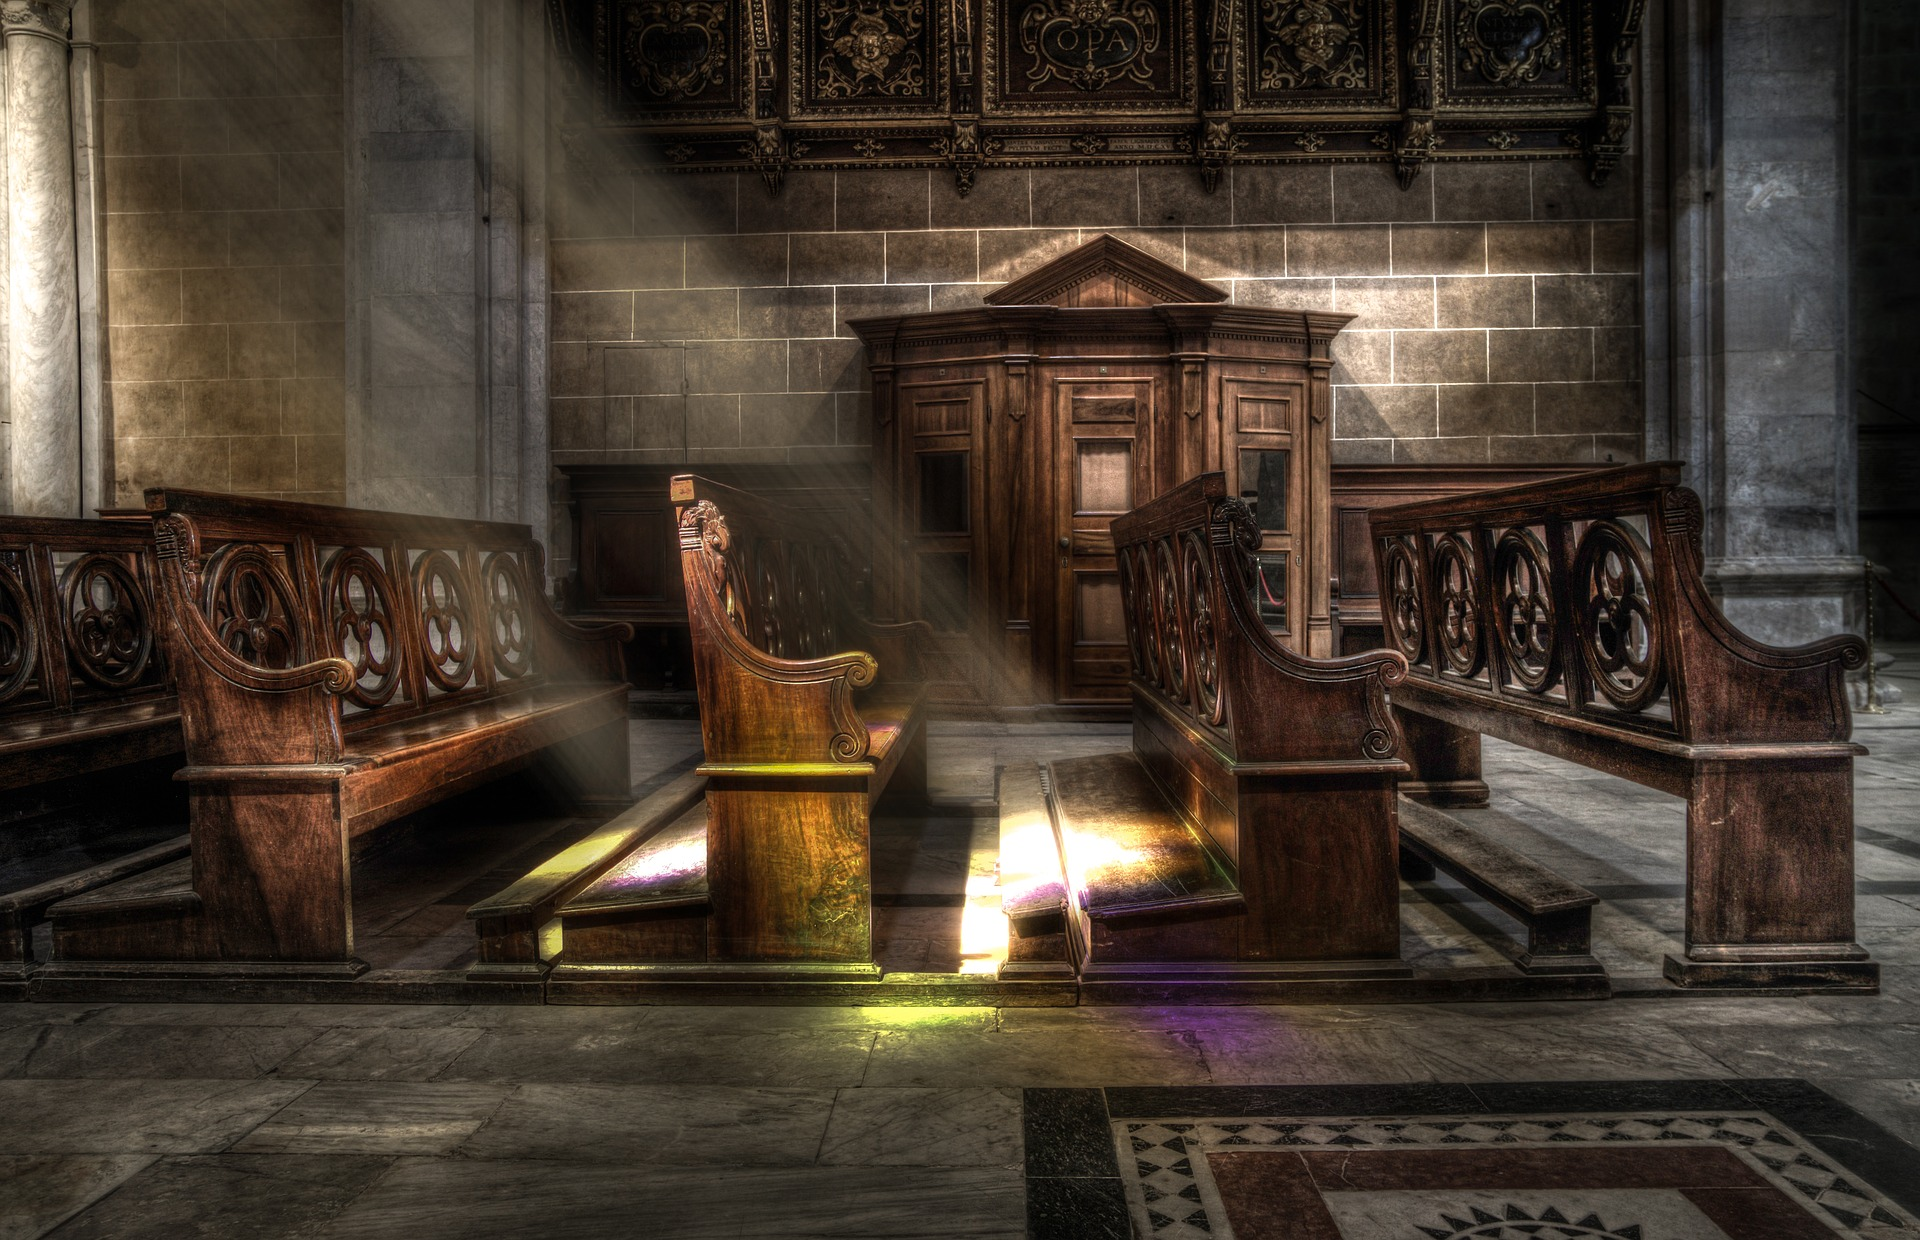 The believer's access to God's throne